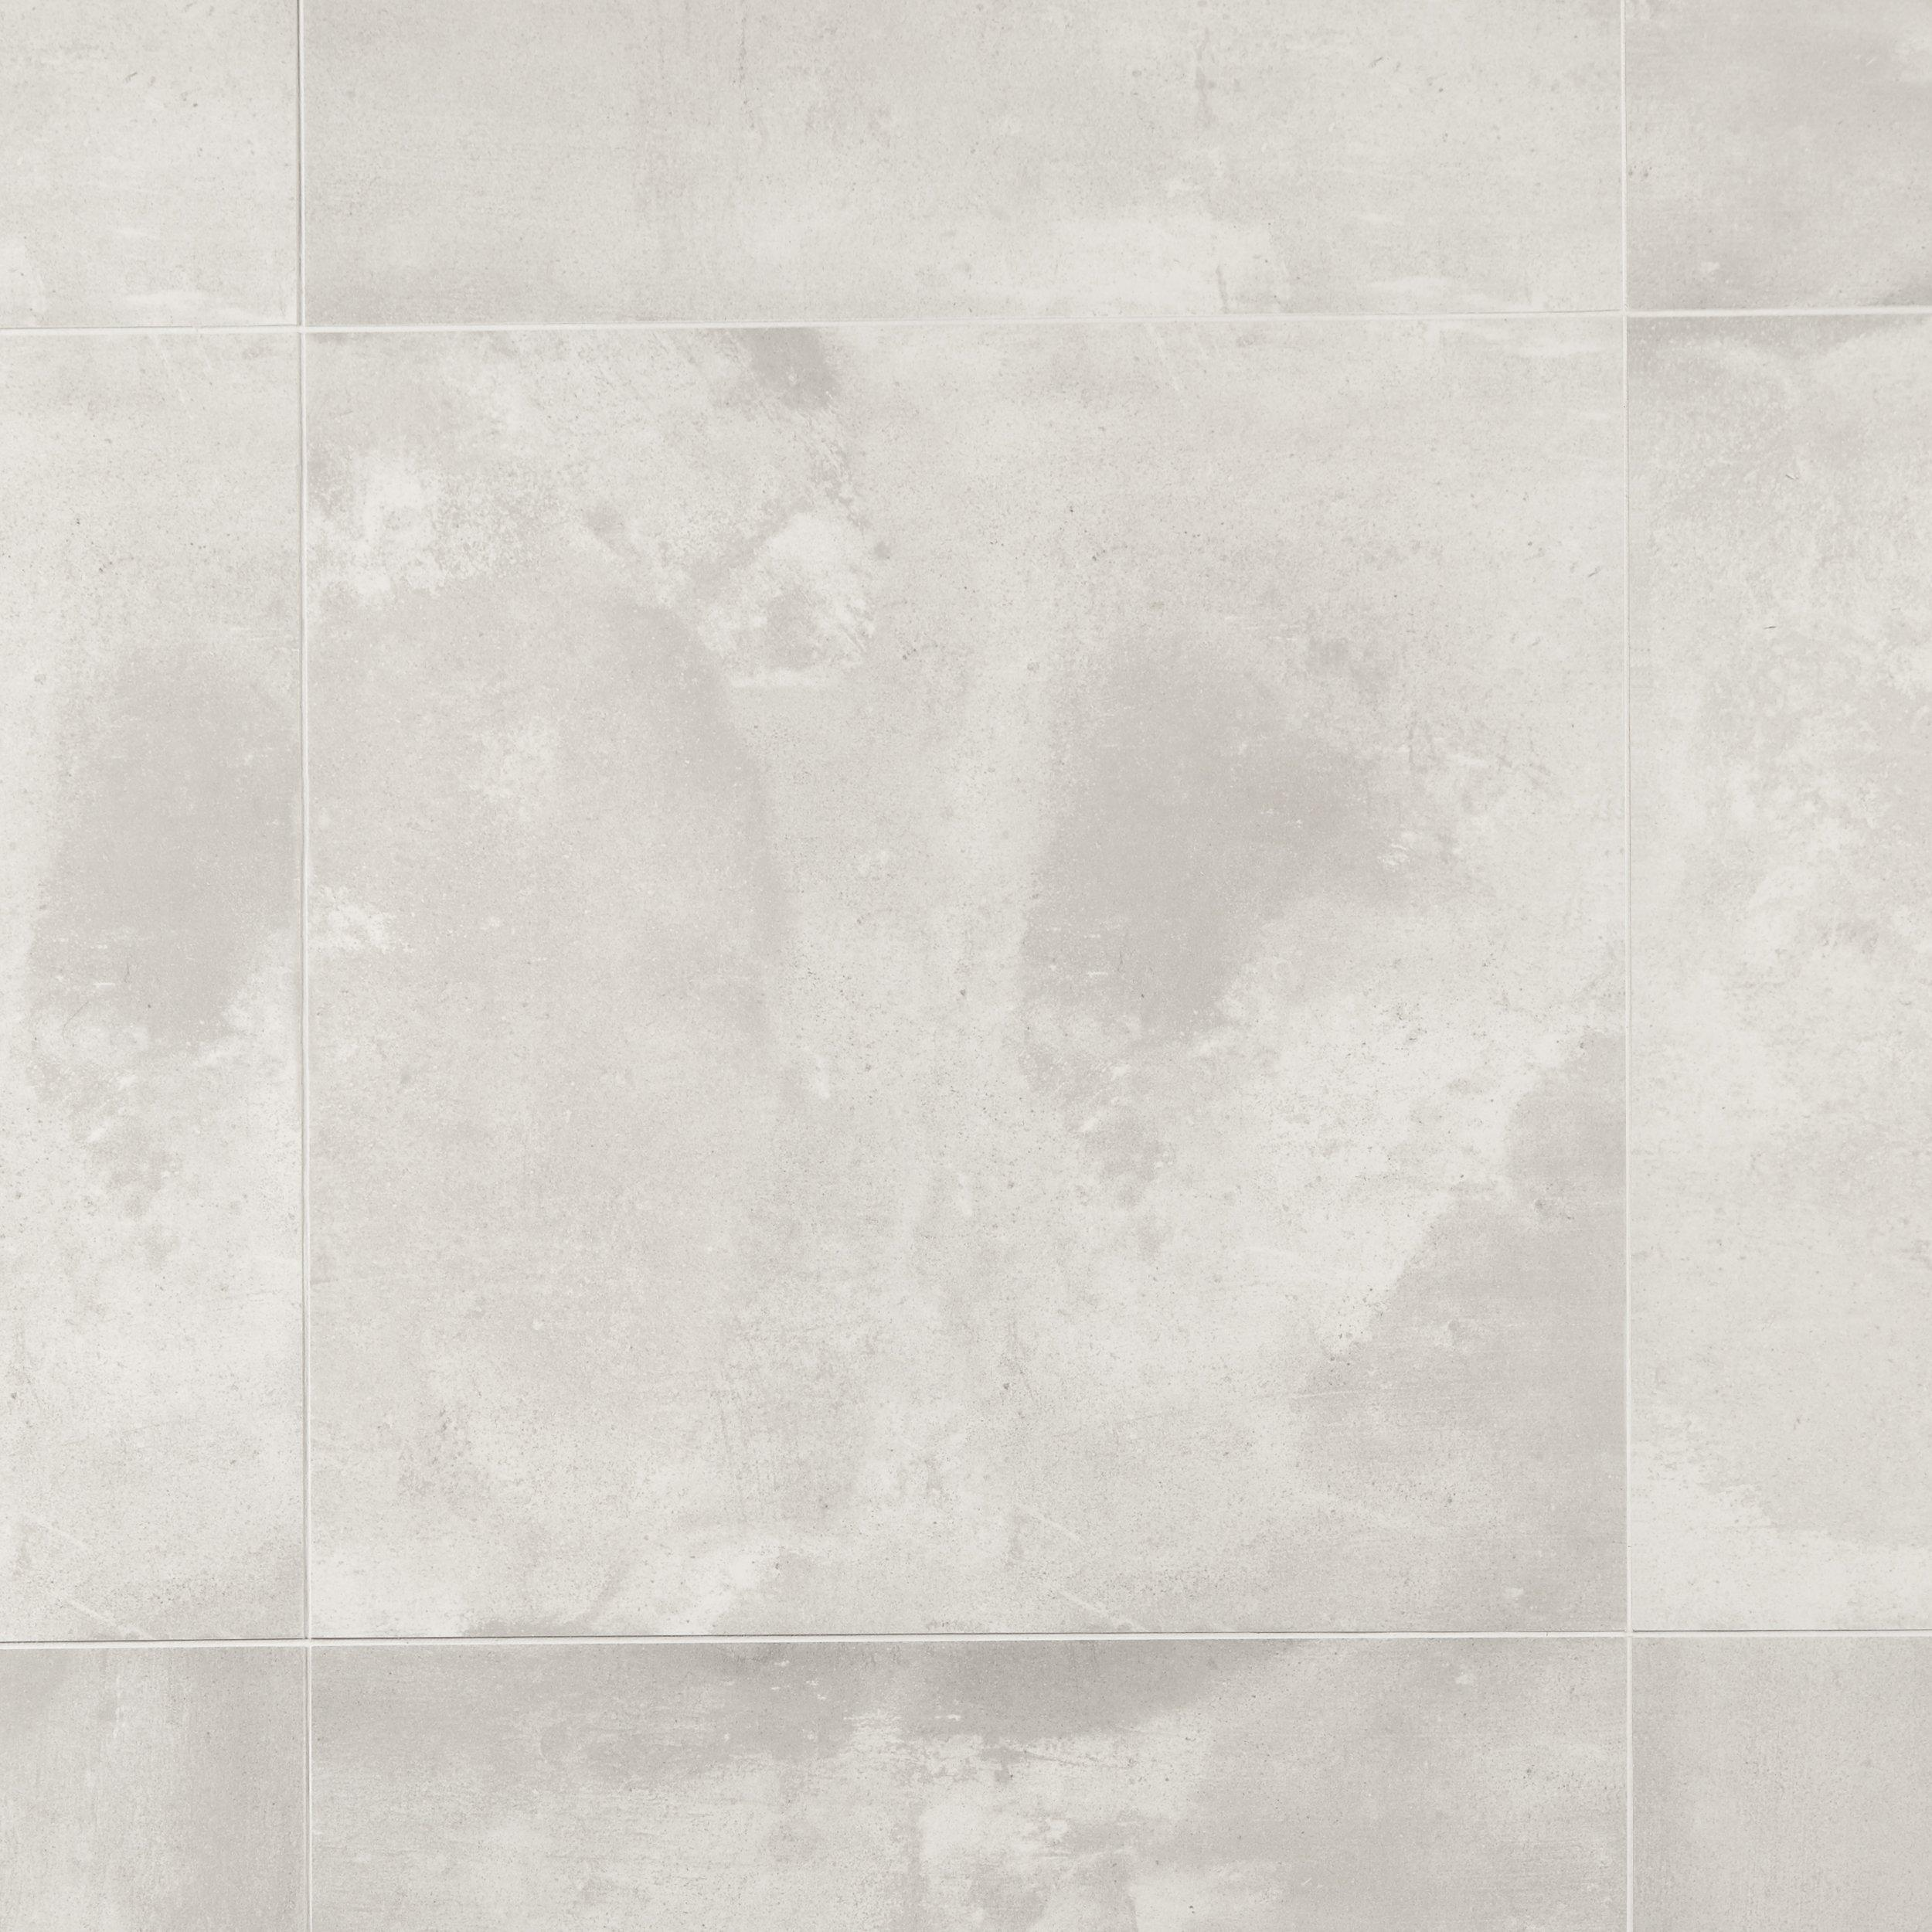 Lunar White Ceramic Tile 24in x 24in 100340777 Floor and Decor